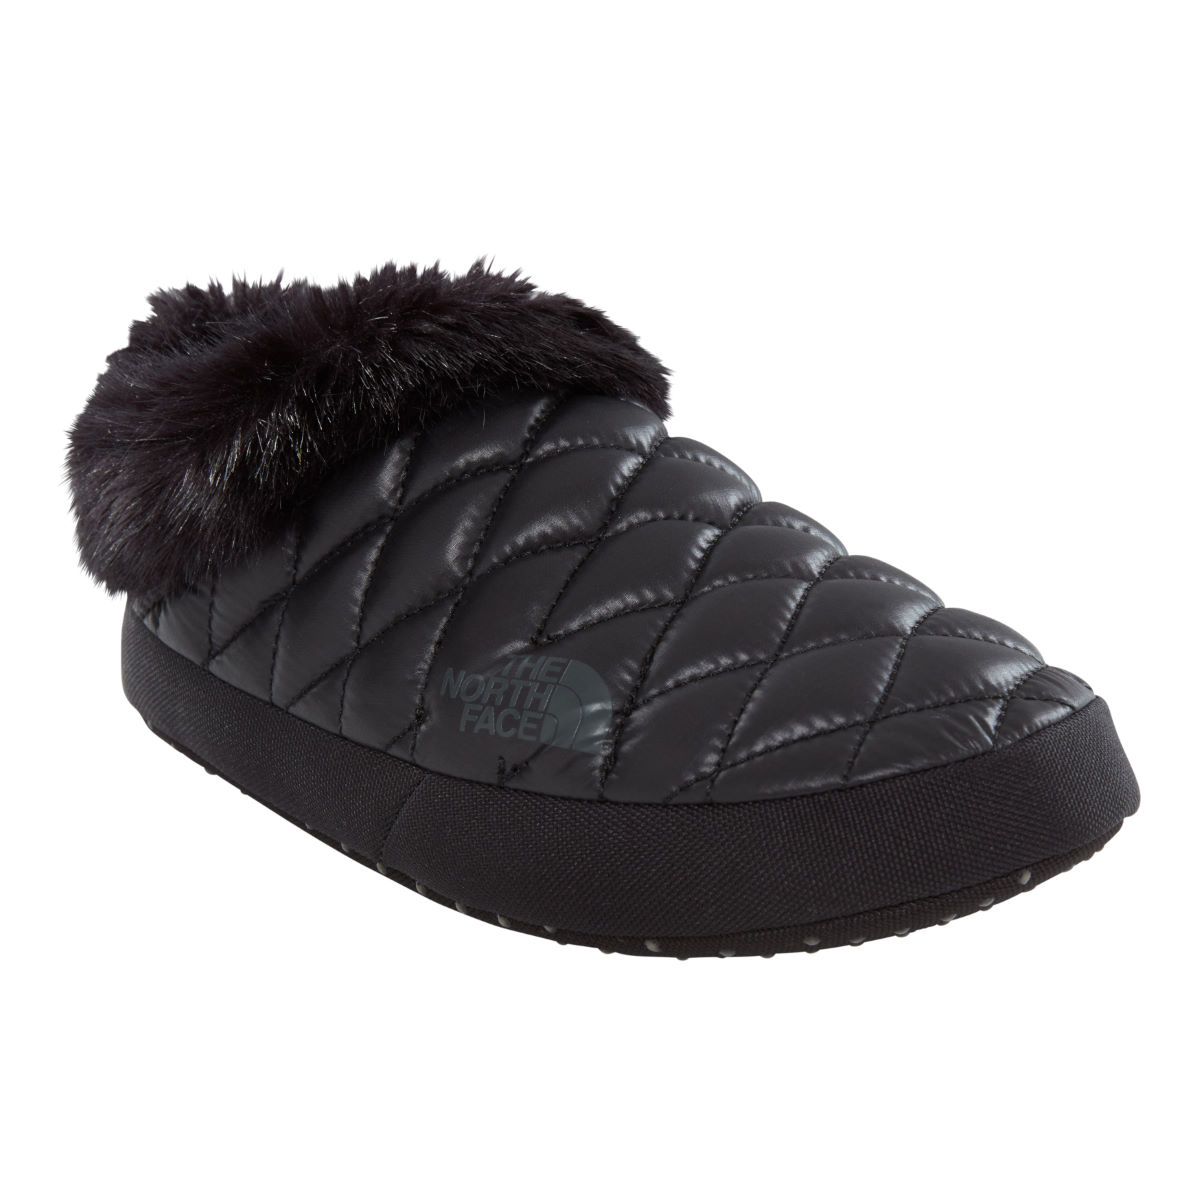 Chaussons Femme The North Face ThermoBall Tent Mule Faux Fur IV - S